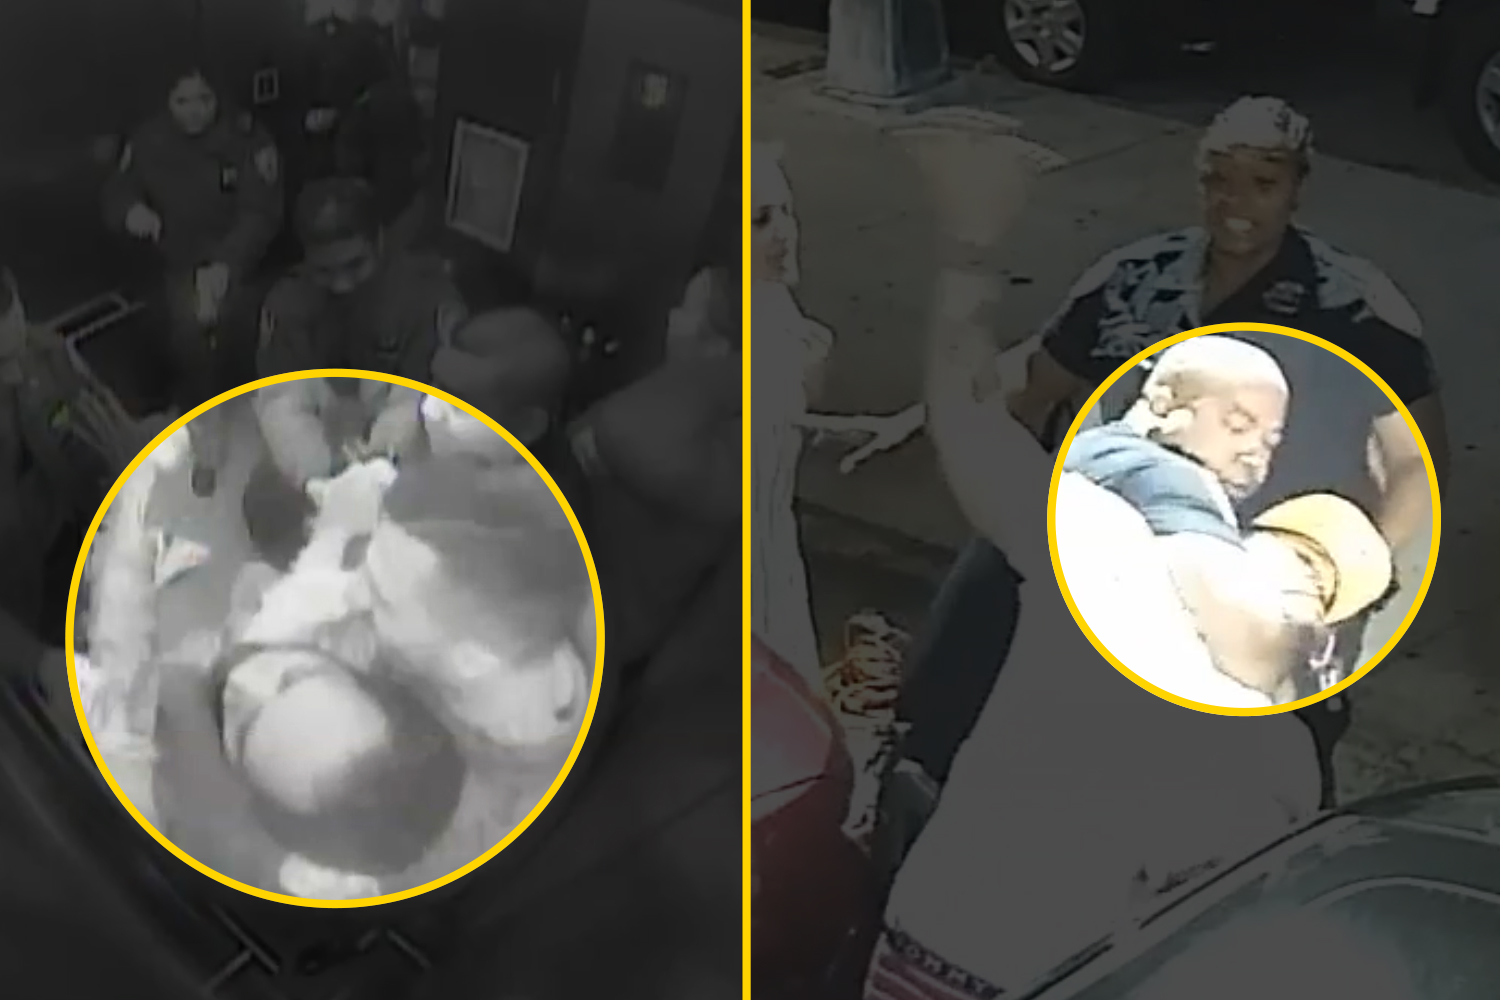 Videos obtained by ProPublica and THE CITY show Detective Manuel Cordova, top left, Officer Omar Habib, right, and Detective Fabio Nunez, bottom left, using chokeholds.